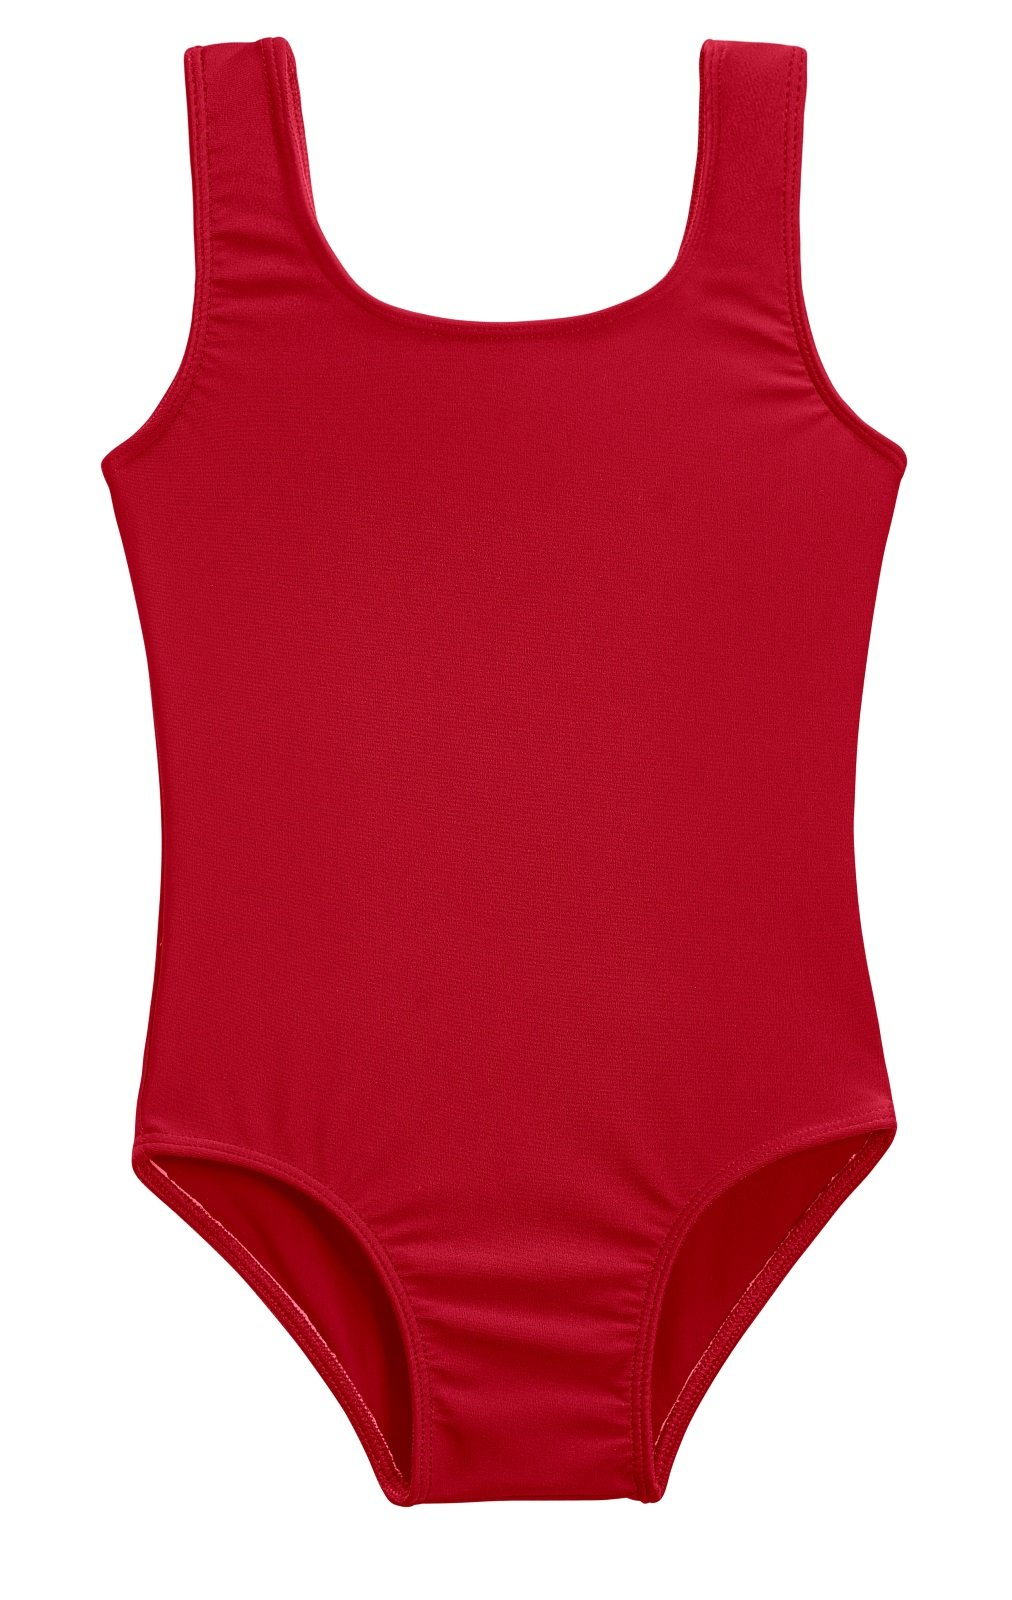 City Threads Girls' One Piece Swimming Suit with Sun Protection SPF for Beach Pool Or Play Swim Suit Rash Guard Bottoms Briefs, Red, 2T